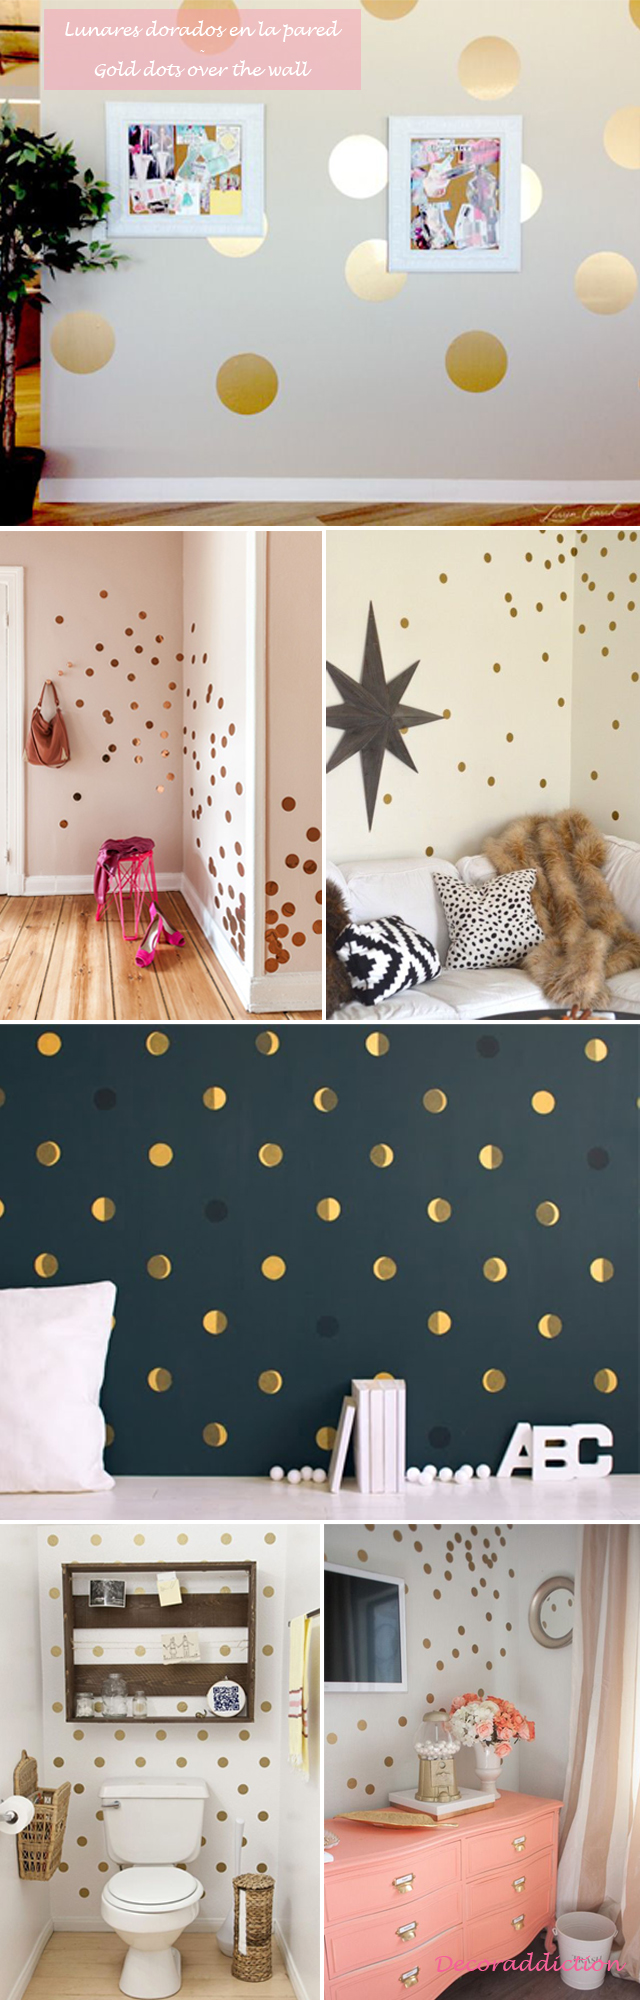 Decorar con lunares dorados hechos por ti - DIY gold dots decorations_paredes